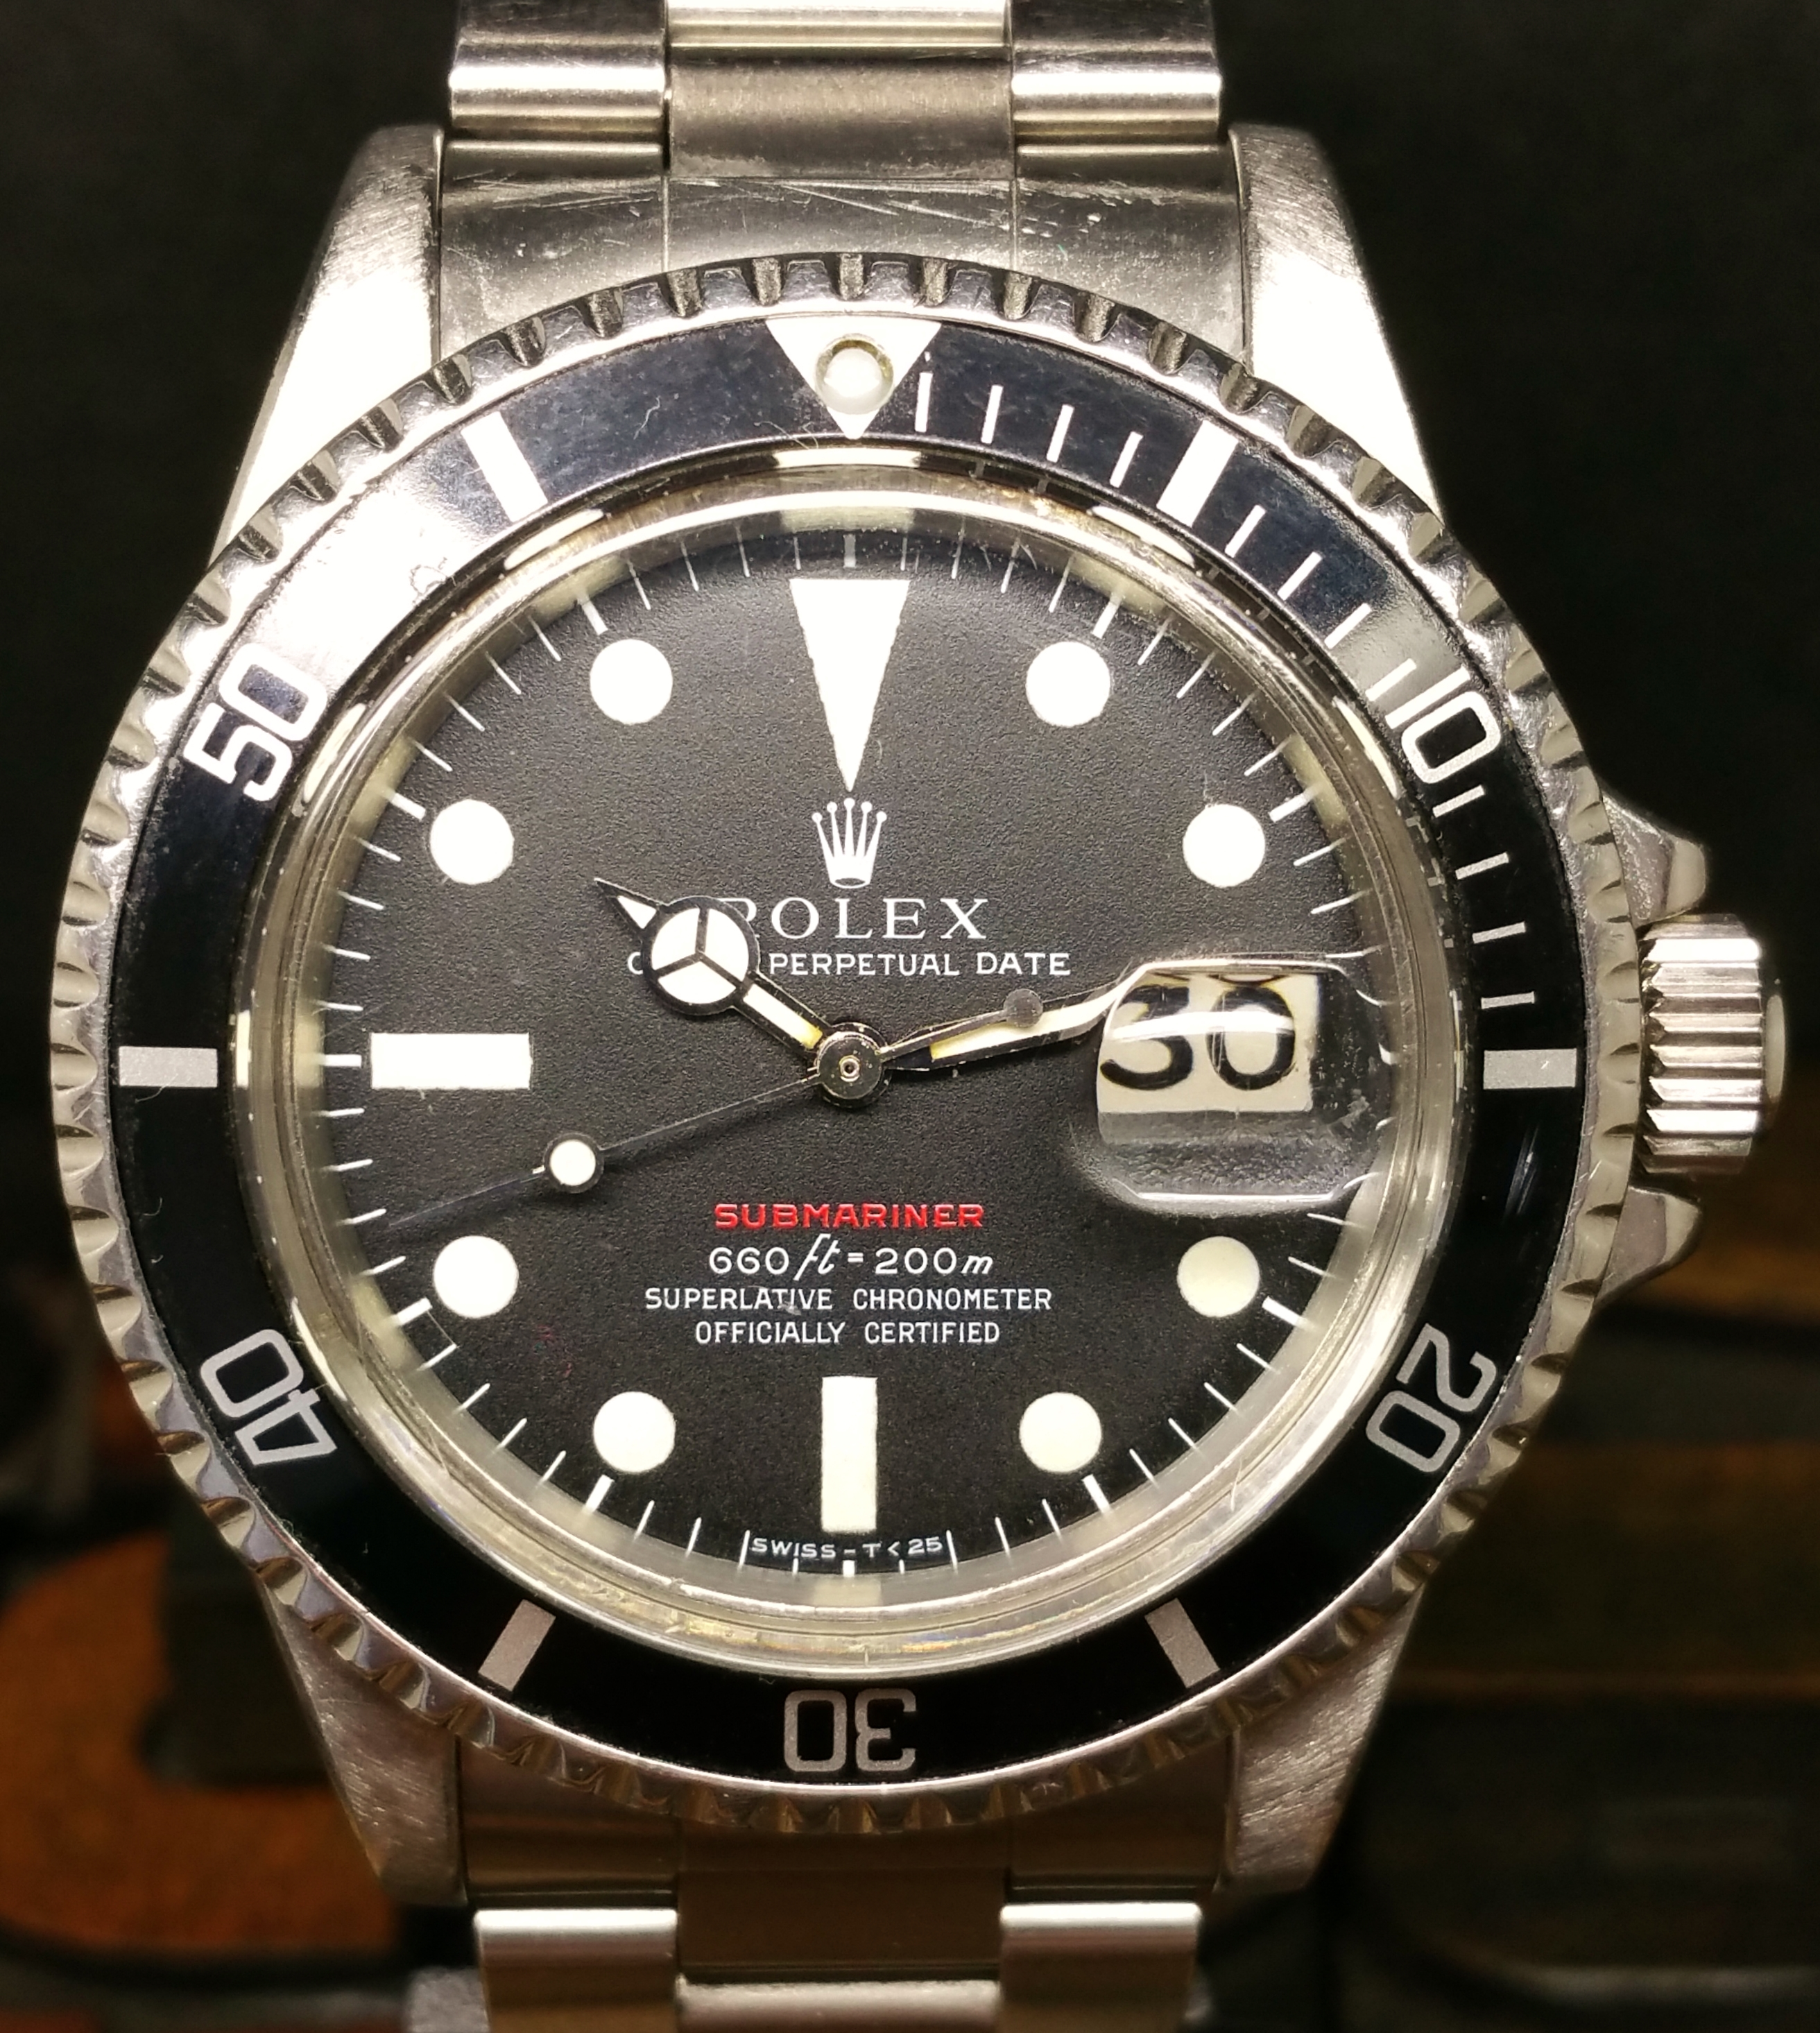 1972 Rolex Submariner Red 1680 Mark IV Dial